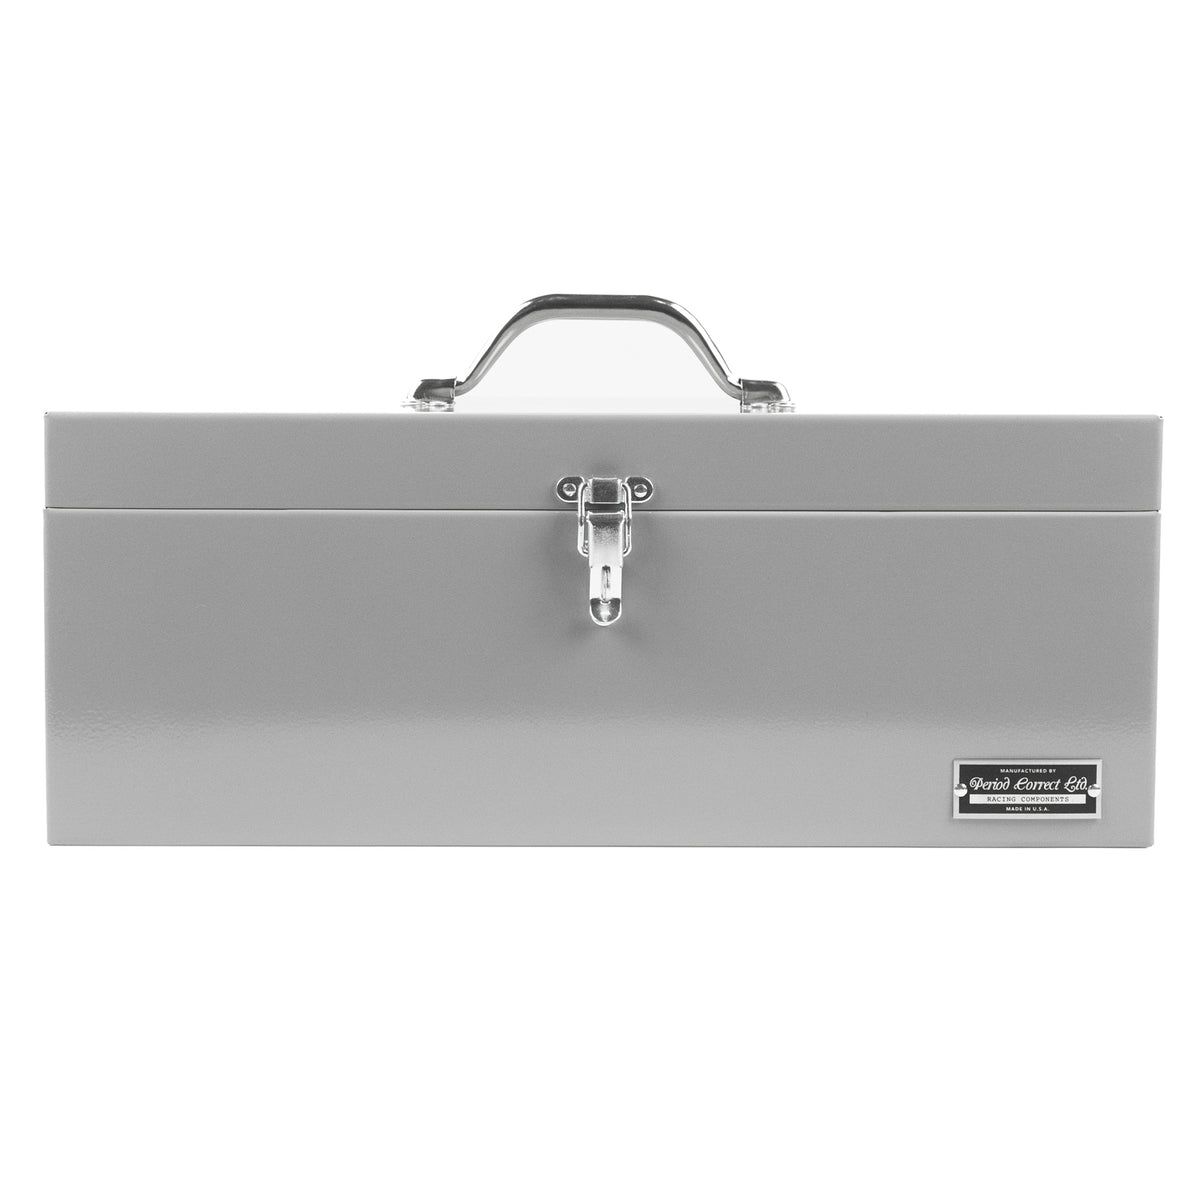 LARGE ENGINEERING TOOL BOX GREY